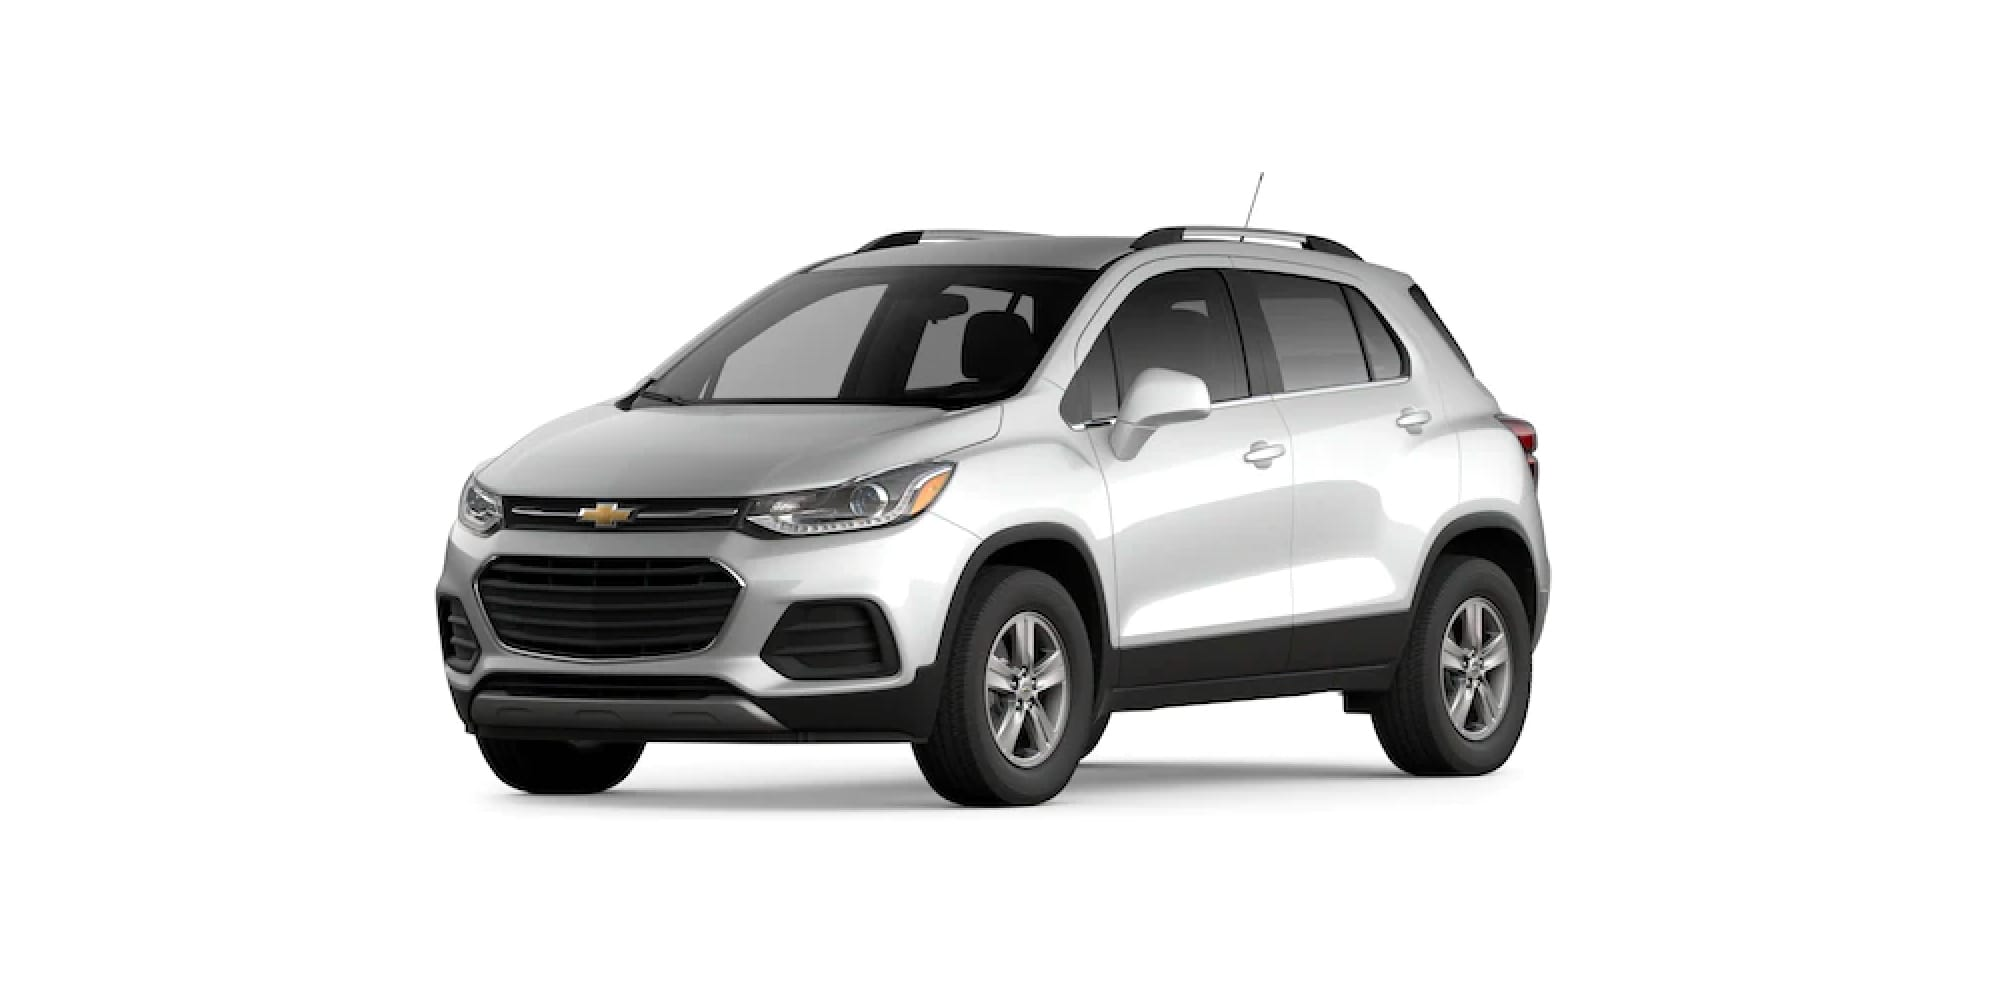 2022 Chevy Trax in IRIDESCENT PEARL TRICOAT